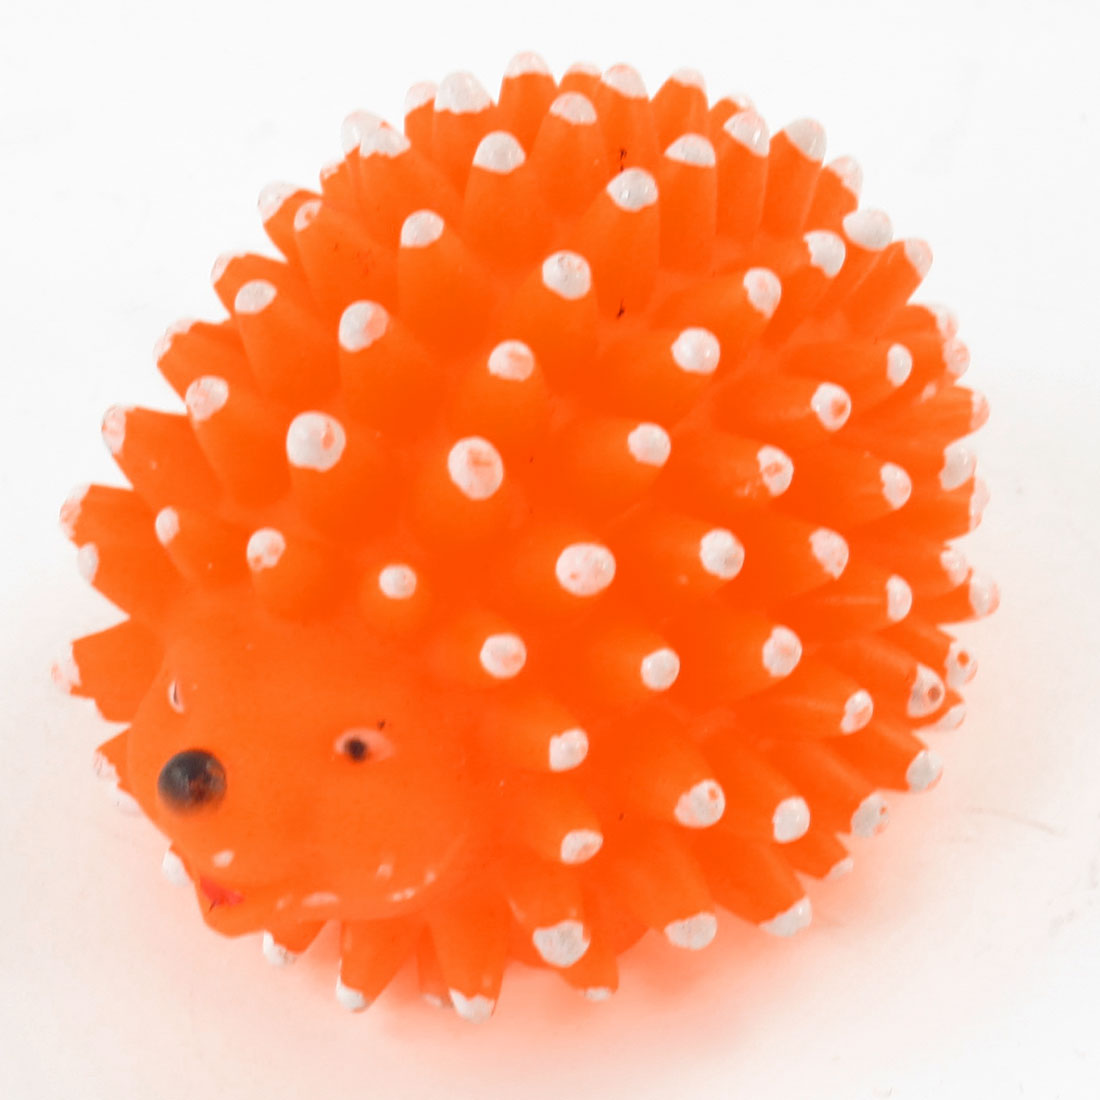 Orangered Vinyl Rubber Hedgehog Design Sound Squeaky Toy for Pet Dog Puppy